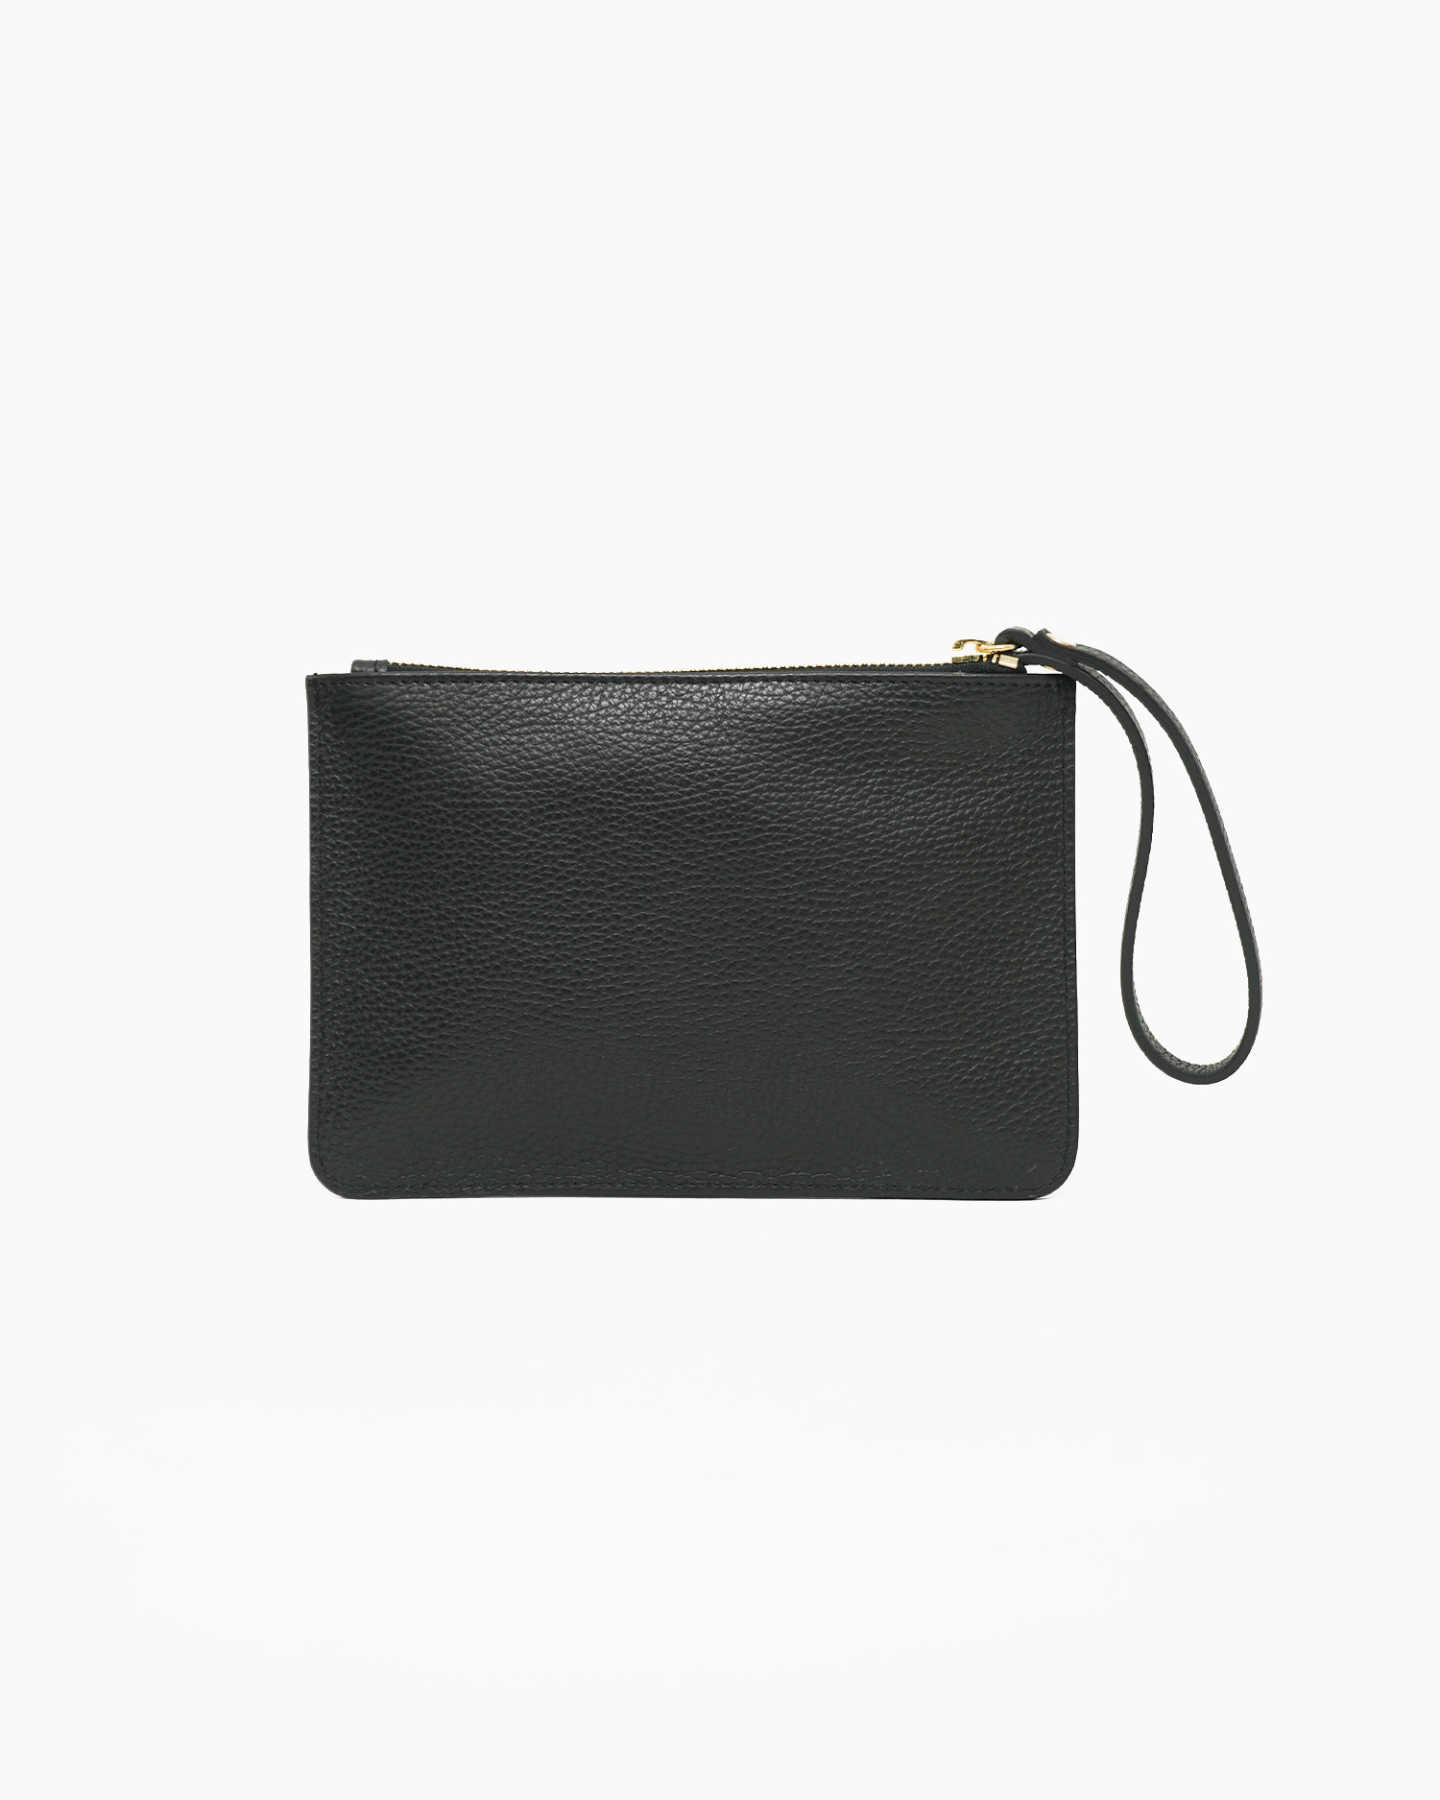 Italian Pebbled Leather Wristlet - Black - 0